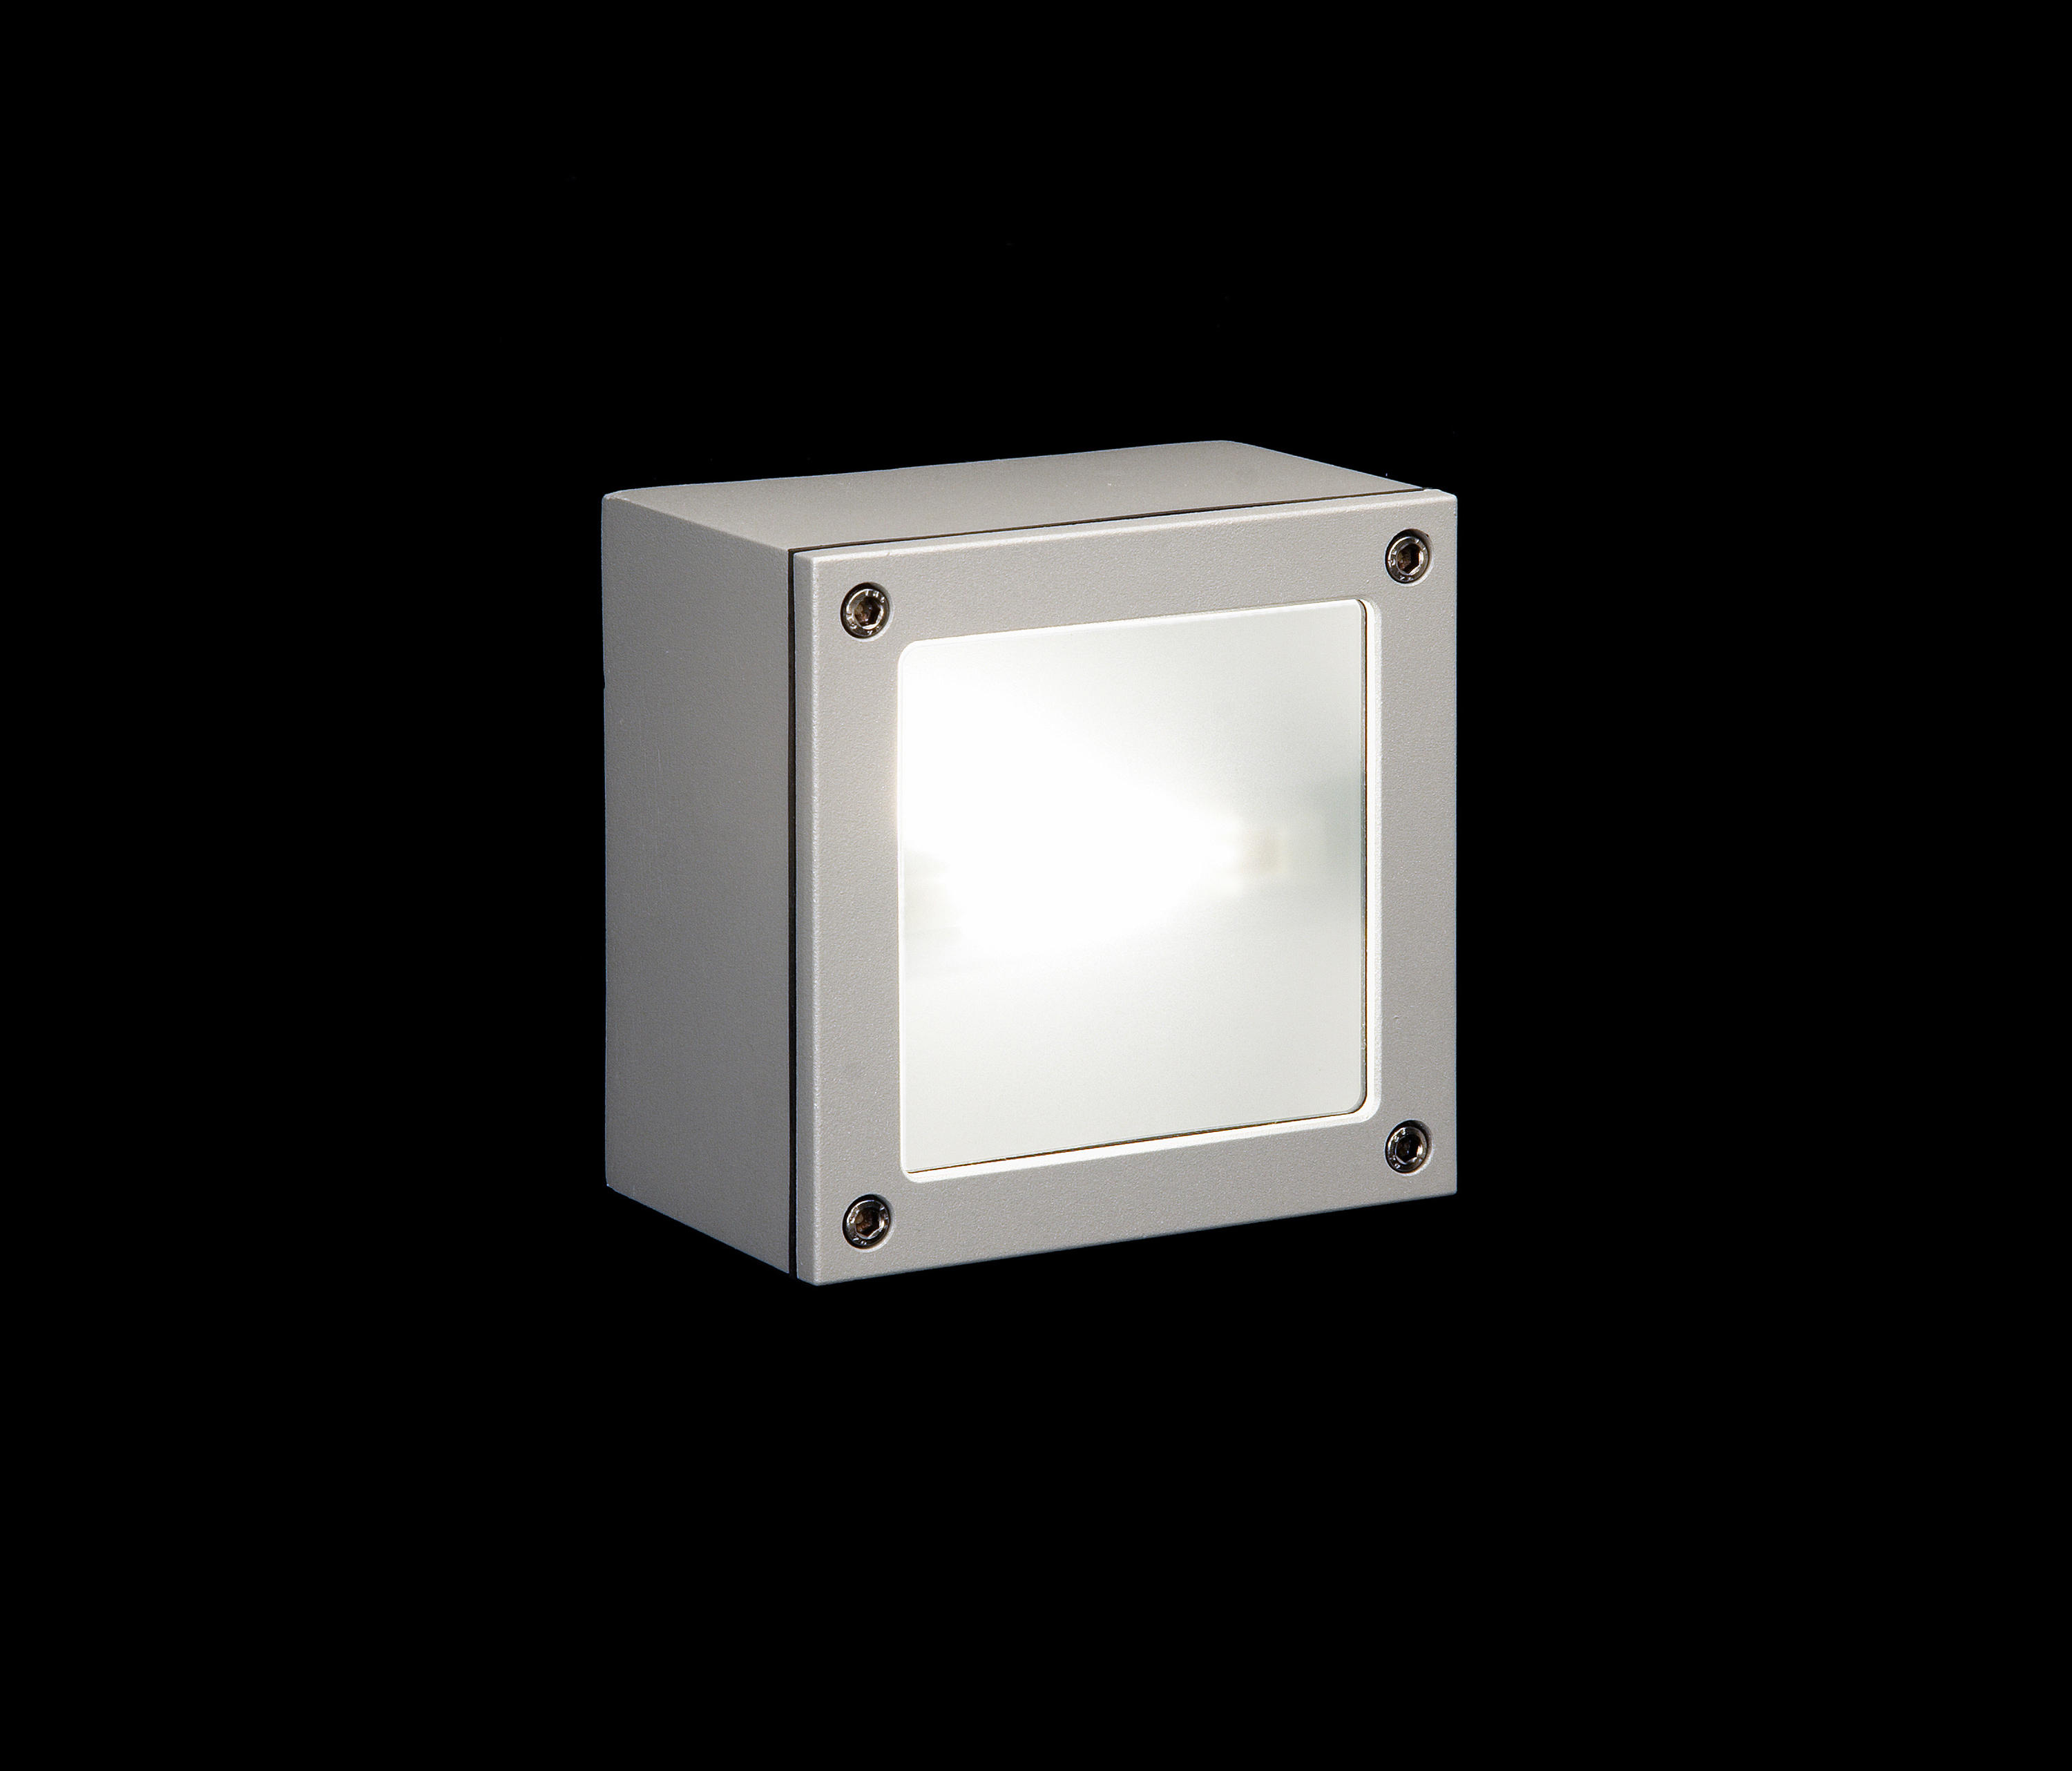 paola paolina  alllight  sandblasted glass  spotlights from  - paola paolina  alllight  sandblasted glass by ares  spotlights